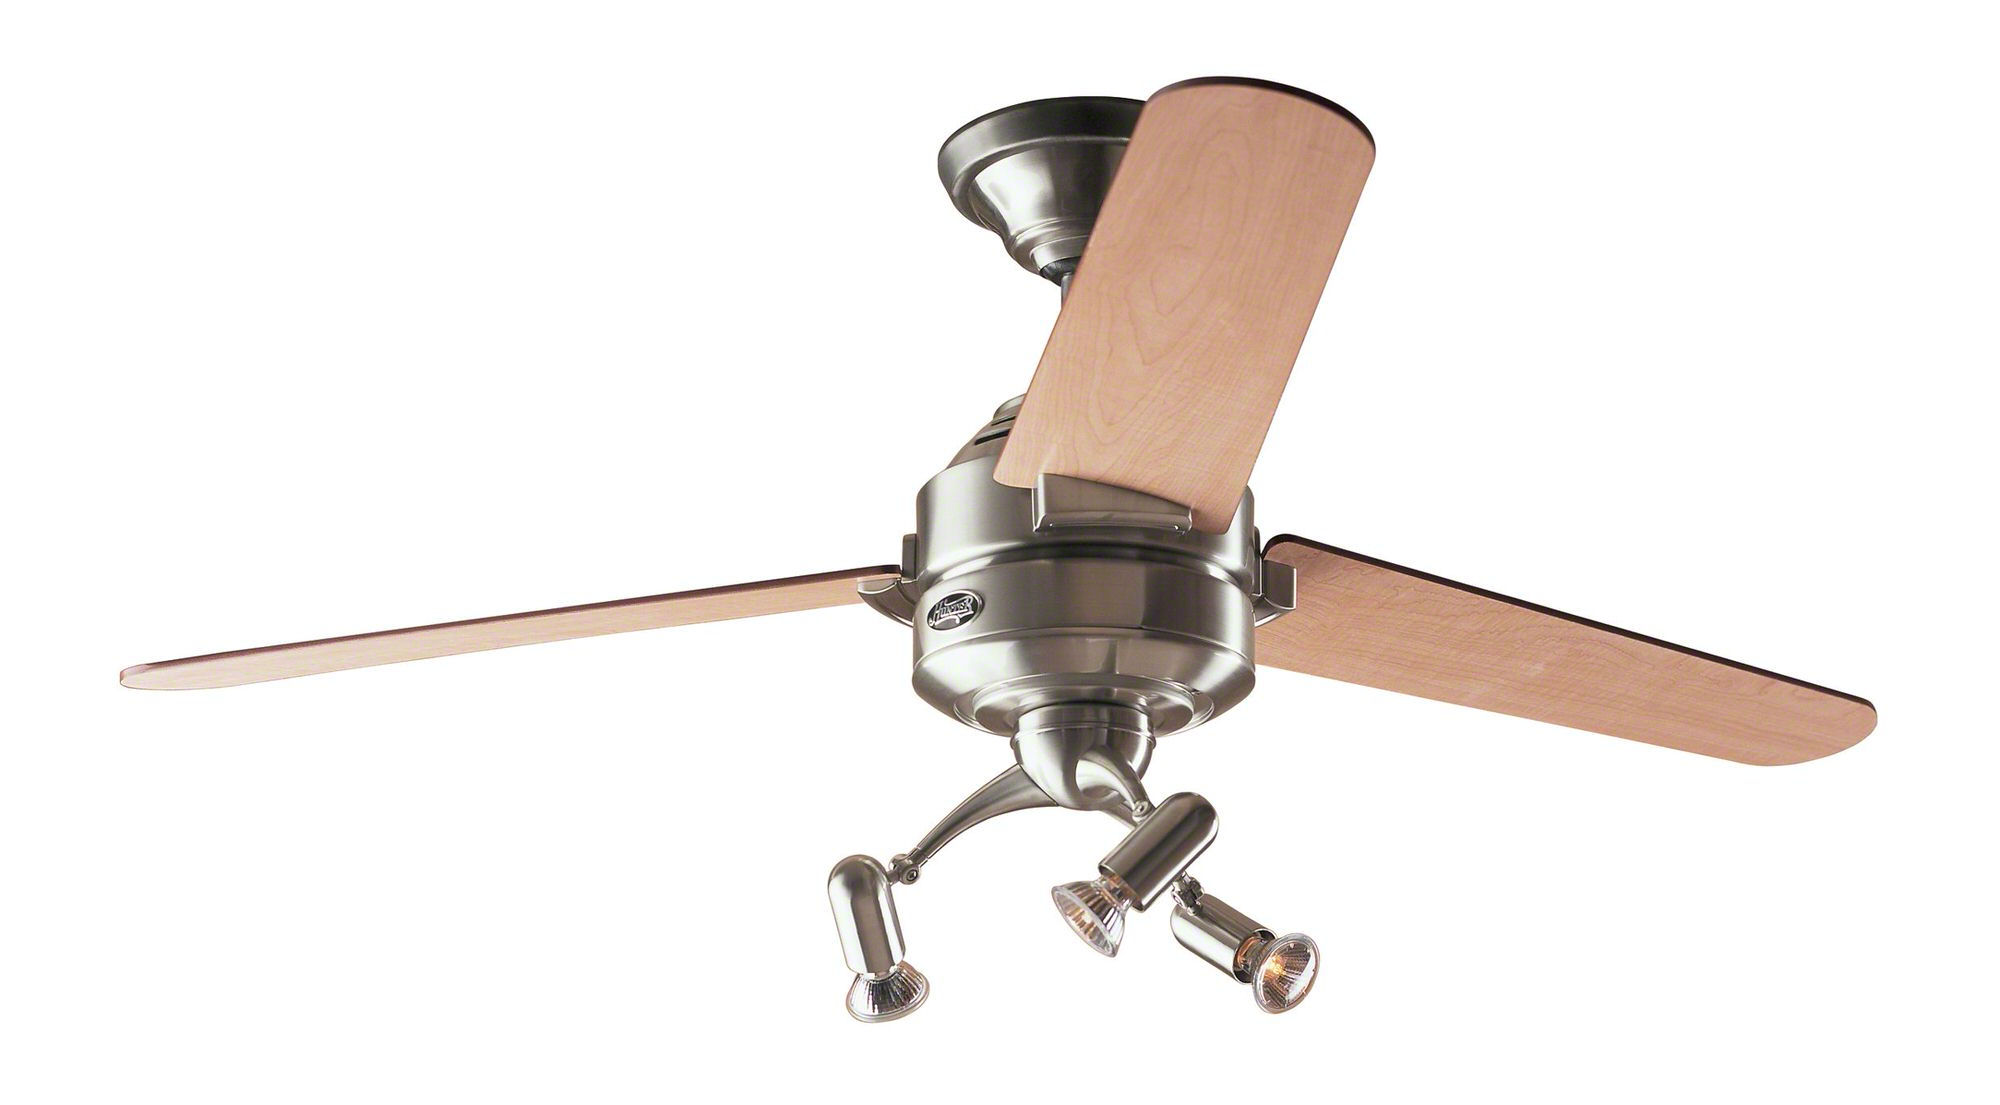 brushed kit fan inside com fans casablanca star voicesofimani ceiling incredible new light energy bronze with intended hunter great inch for cocoa